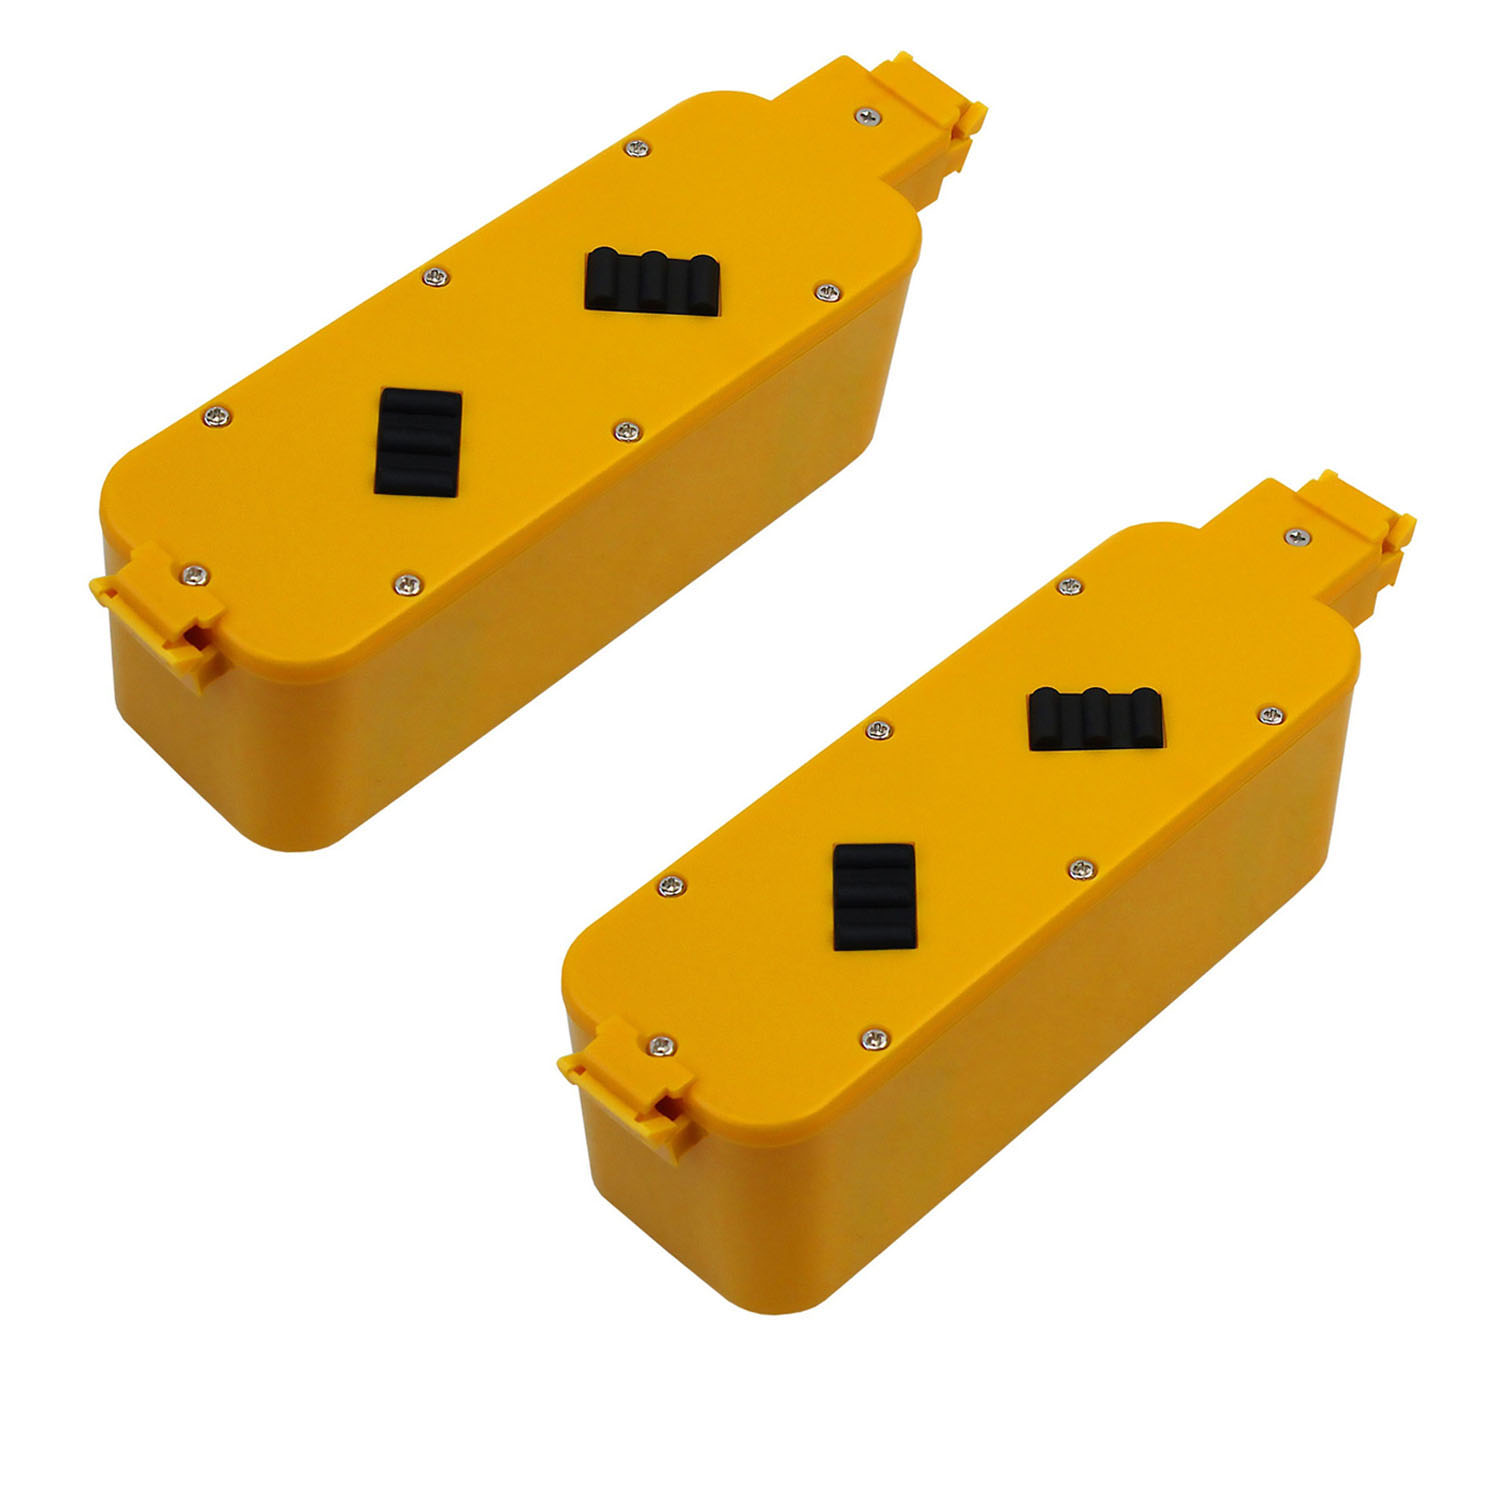 14.4v 2000MAH Replacement for Roomba 400 Series - 2 Pack